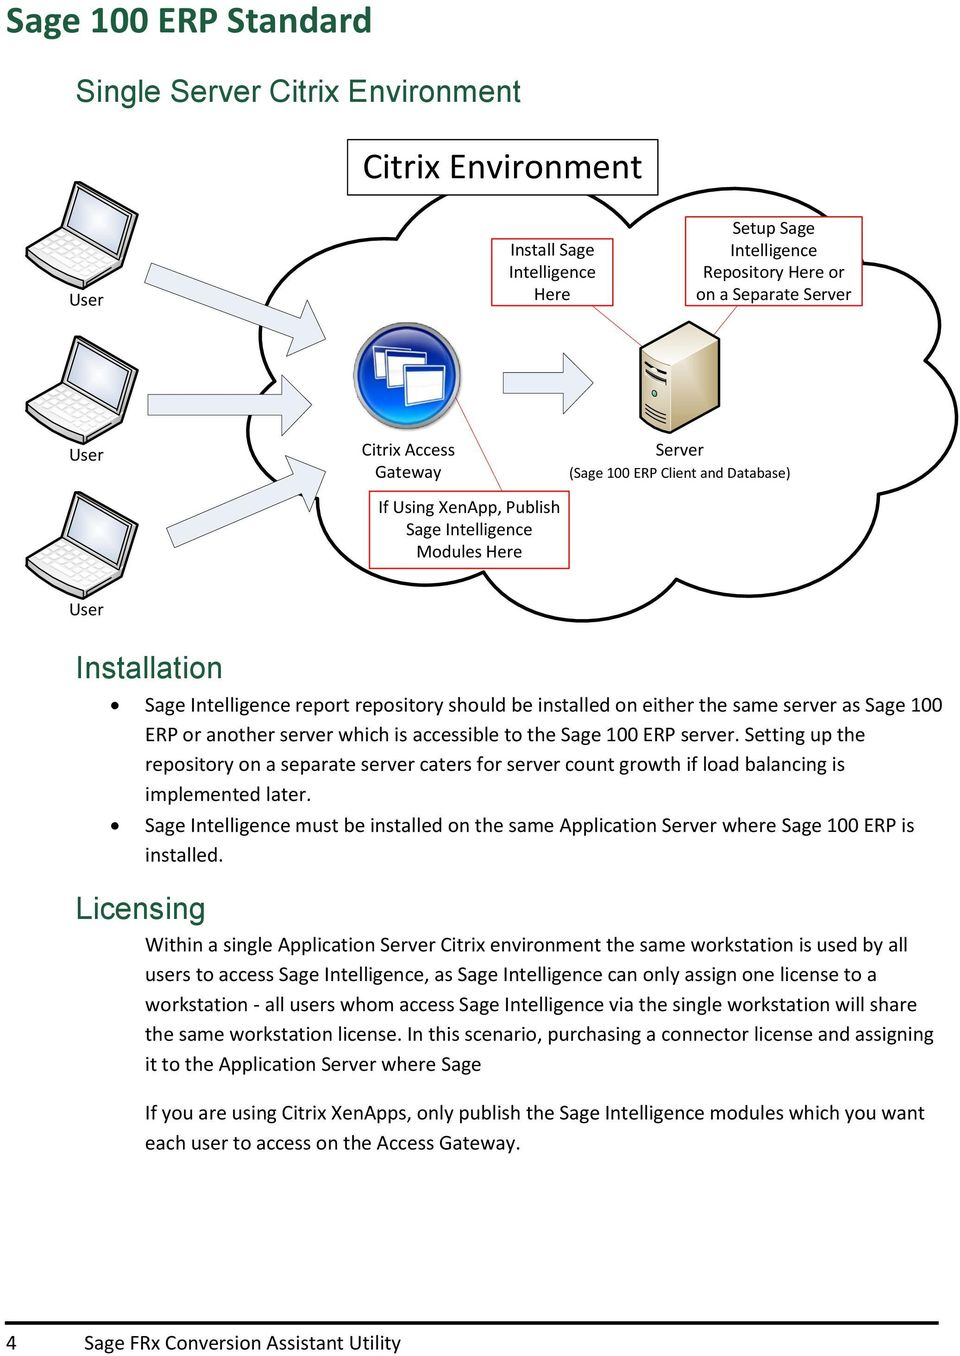 Sage 100 ERP Intelligence  Citrix Environment Installation Guide - PDF